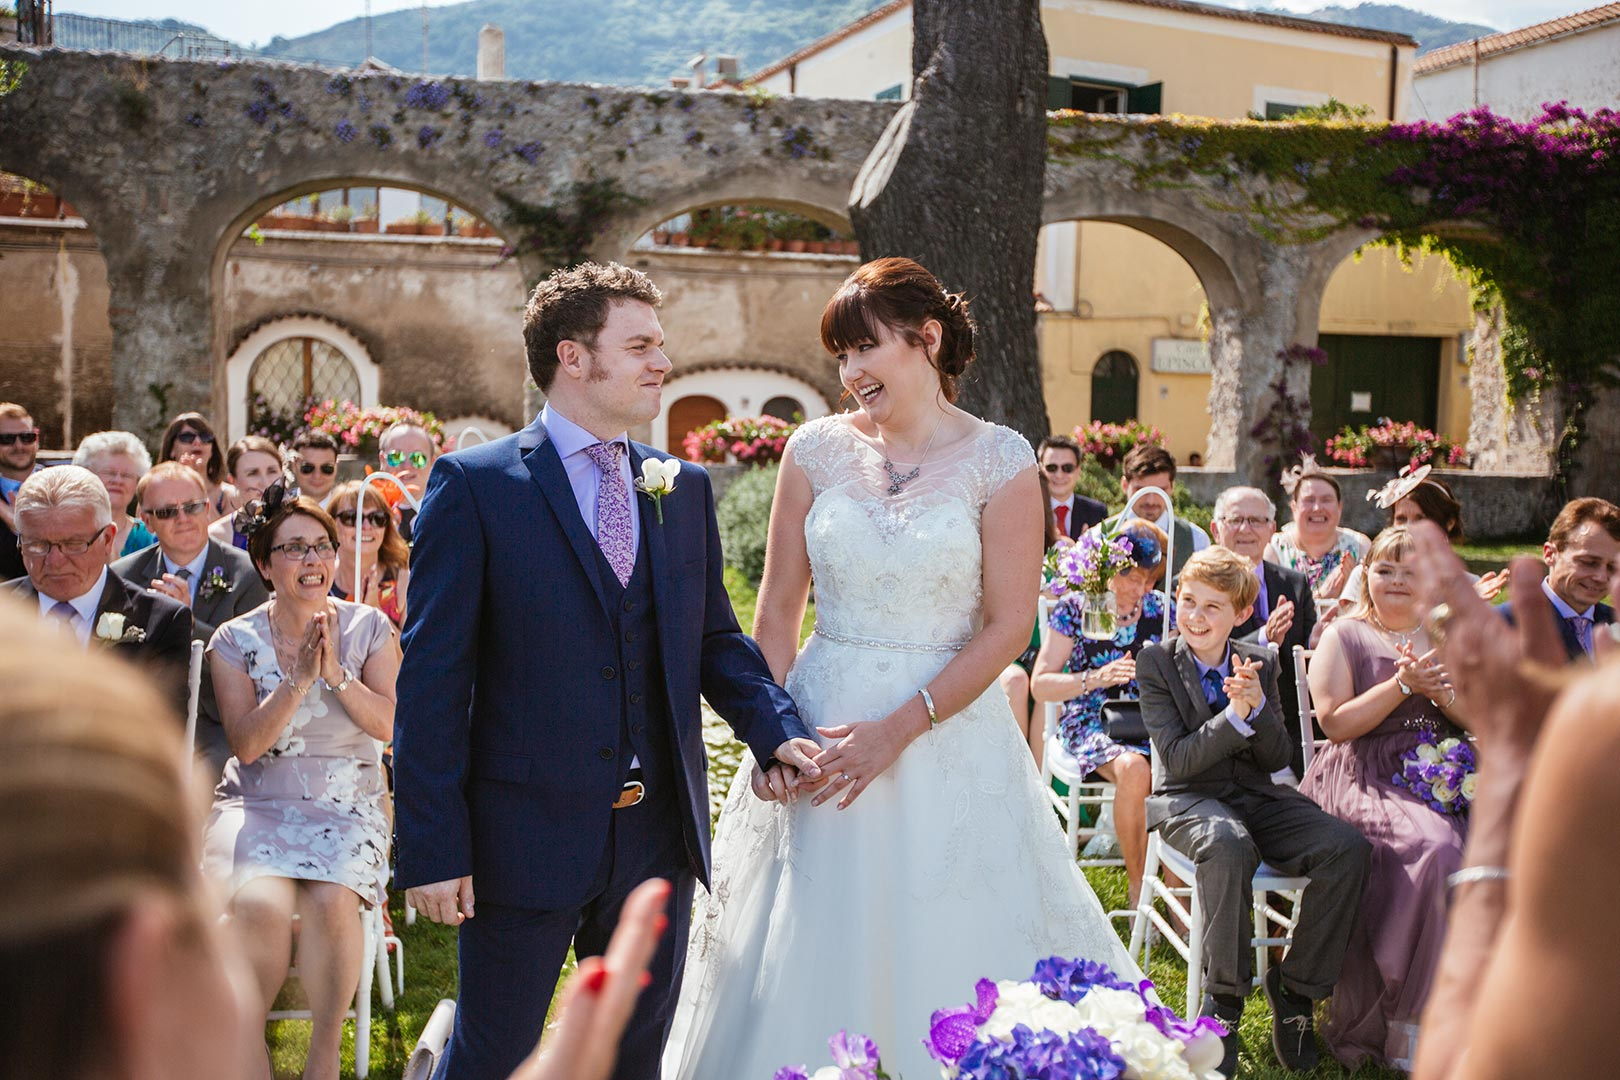 Wedding-at-Ravello_Craig_Ammie